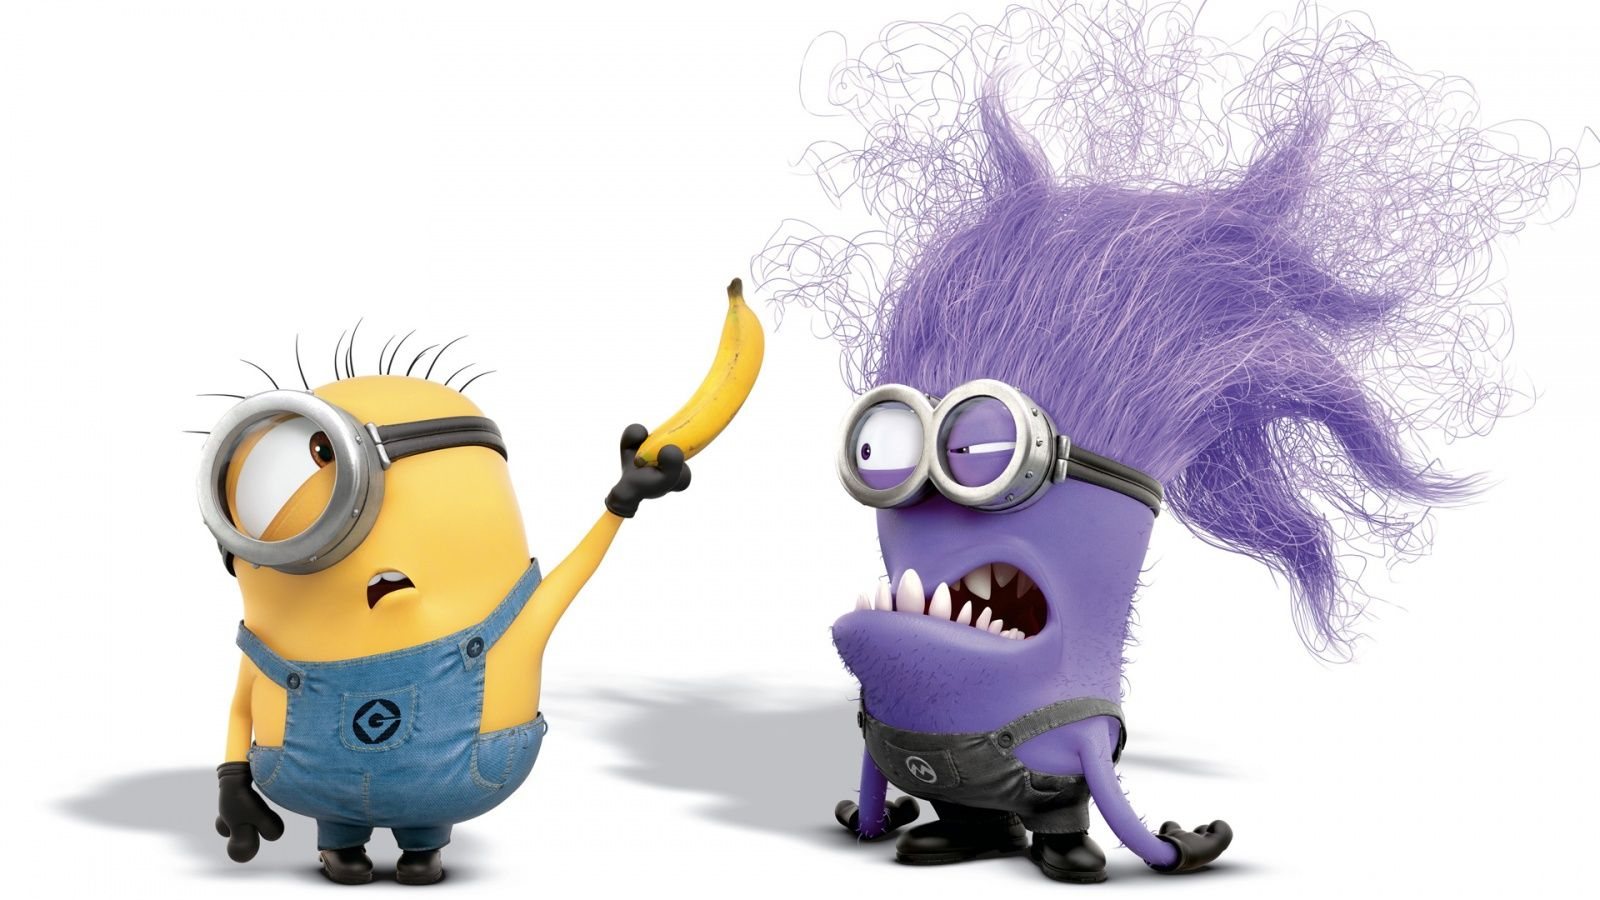 Minions Despicable Me Wallpapers Wallpaper HD Wallpapers